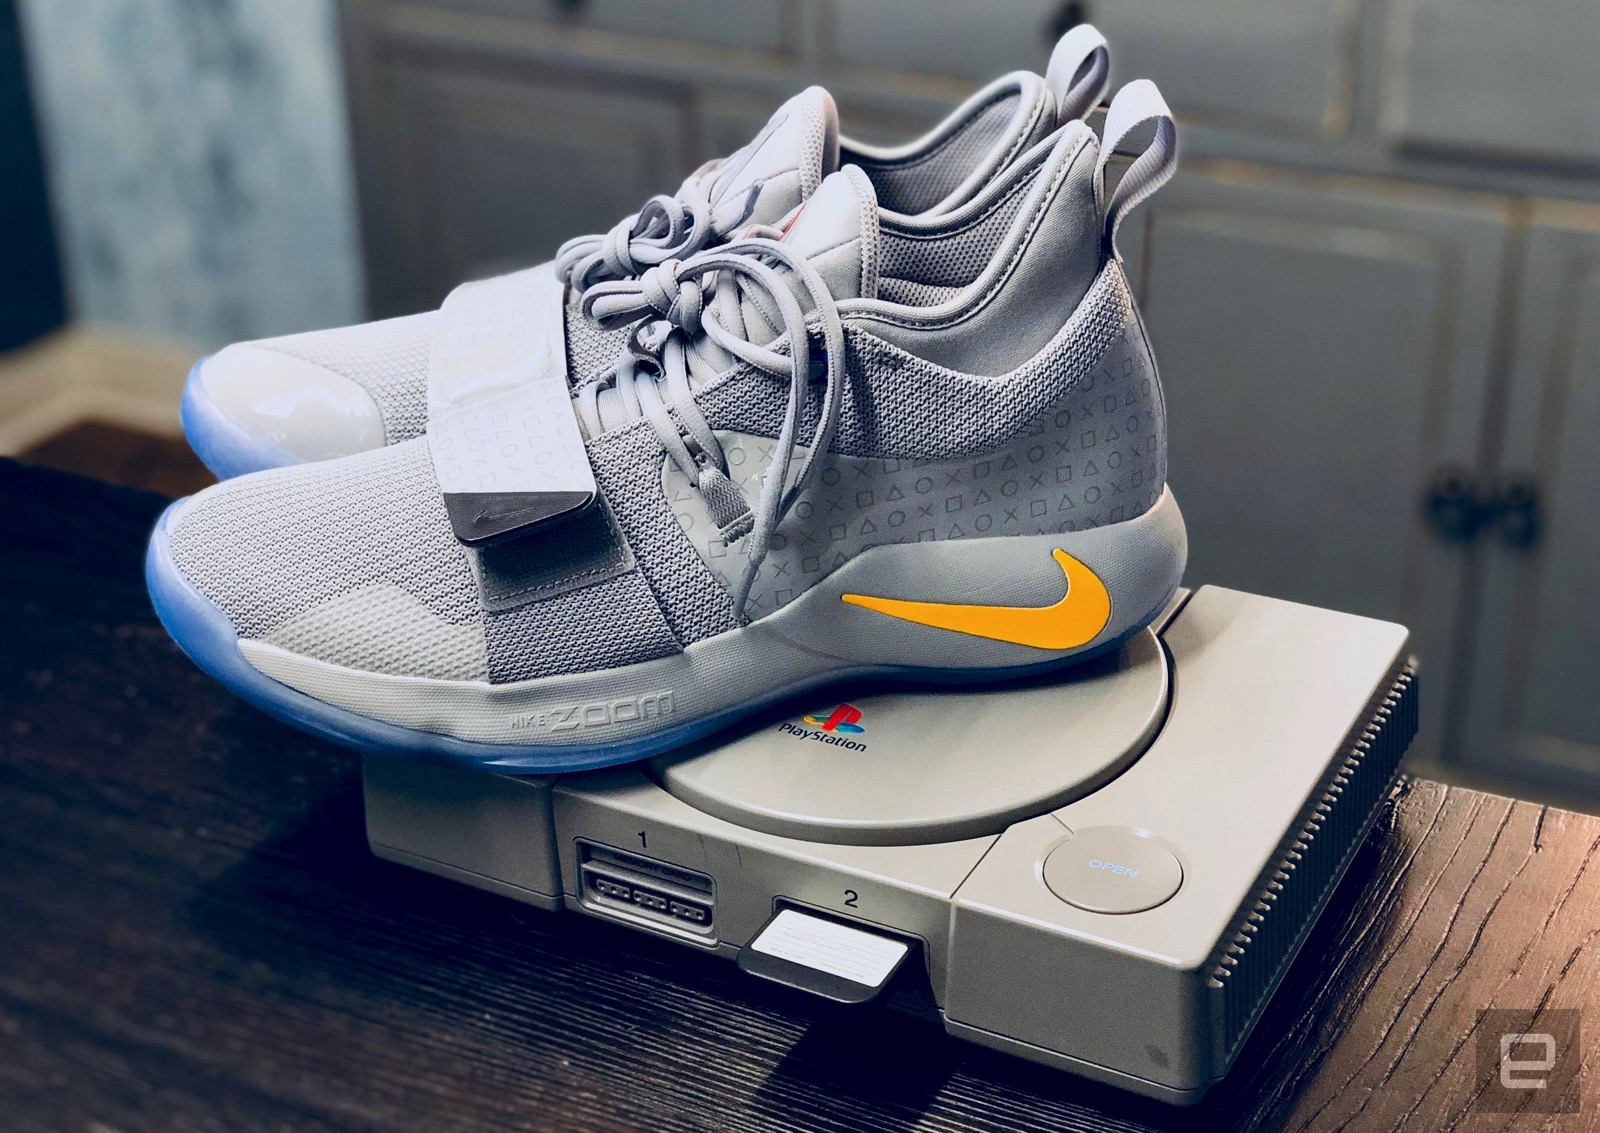 9c81ac519893 Nike s new PlayStation sneakers pay homage to Sony s classic console - The  MagicBox Forums